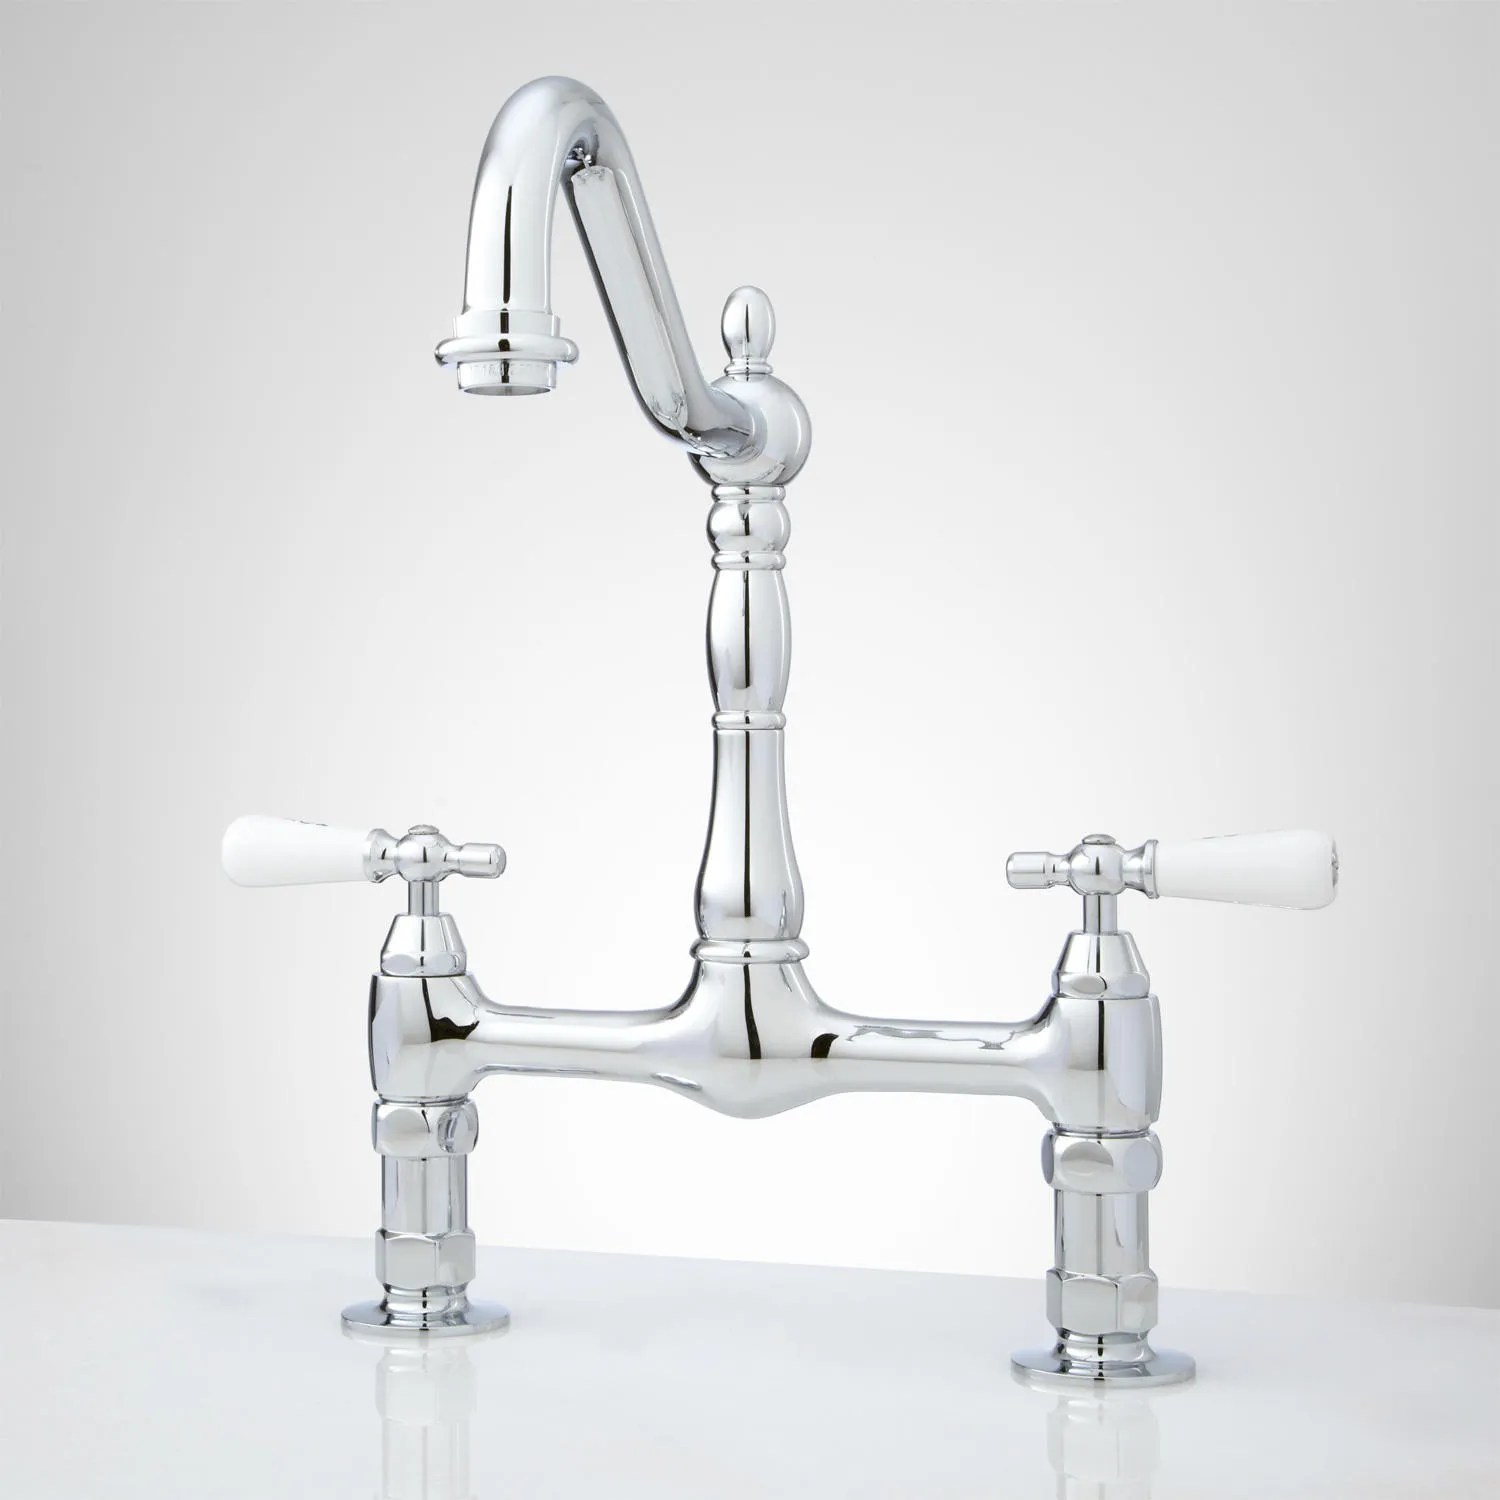 douglass bridge kitchen faucet with porcelain lever handles kitchen faucets The Douglass Bridge Kitchen Faucet features porcelain lever handles and a swivel spout that allows for more room when washing pans